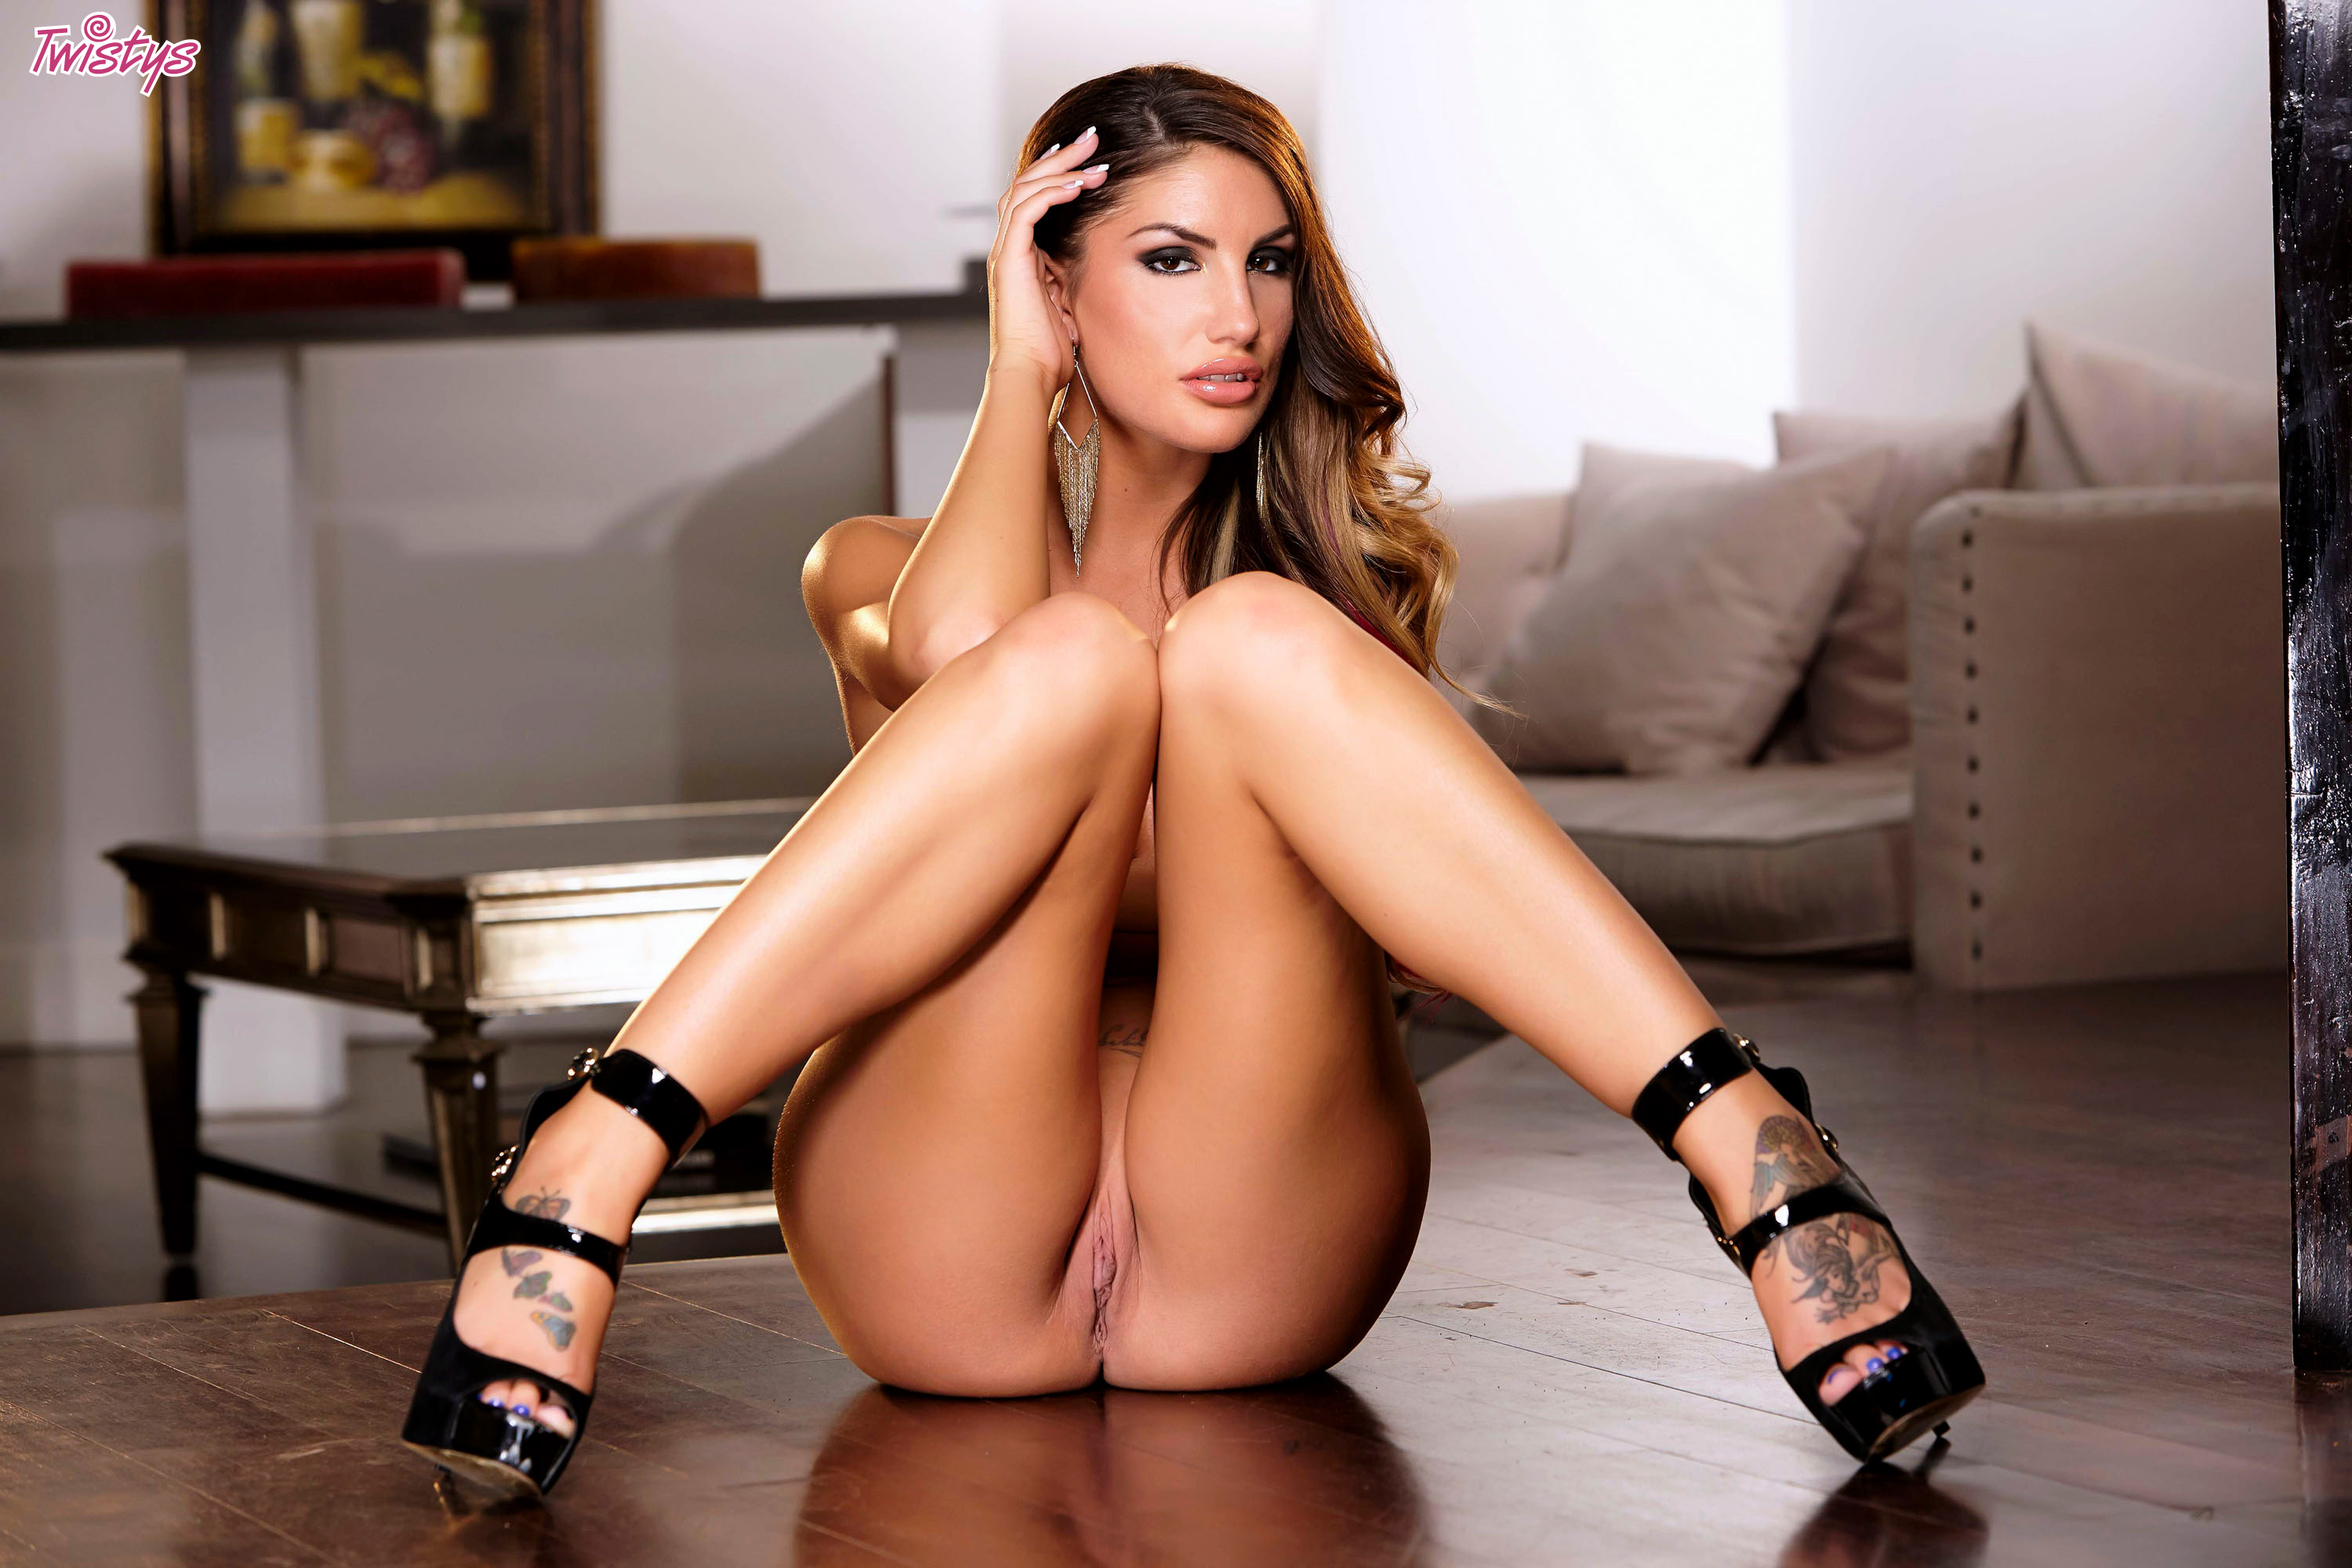 High heel boots and pussy